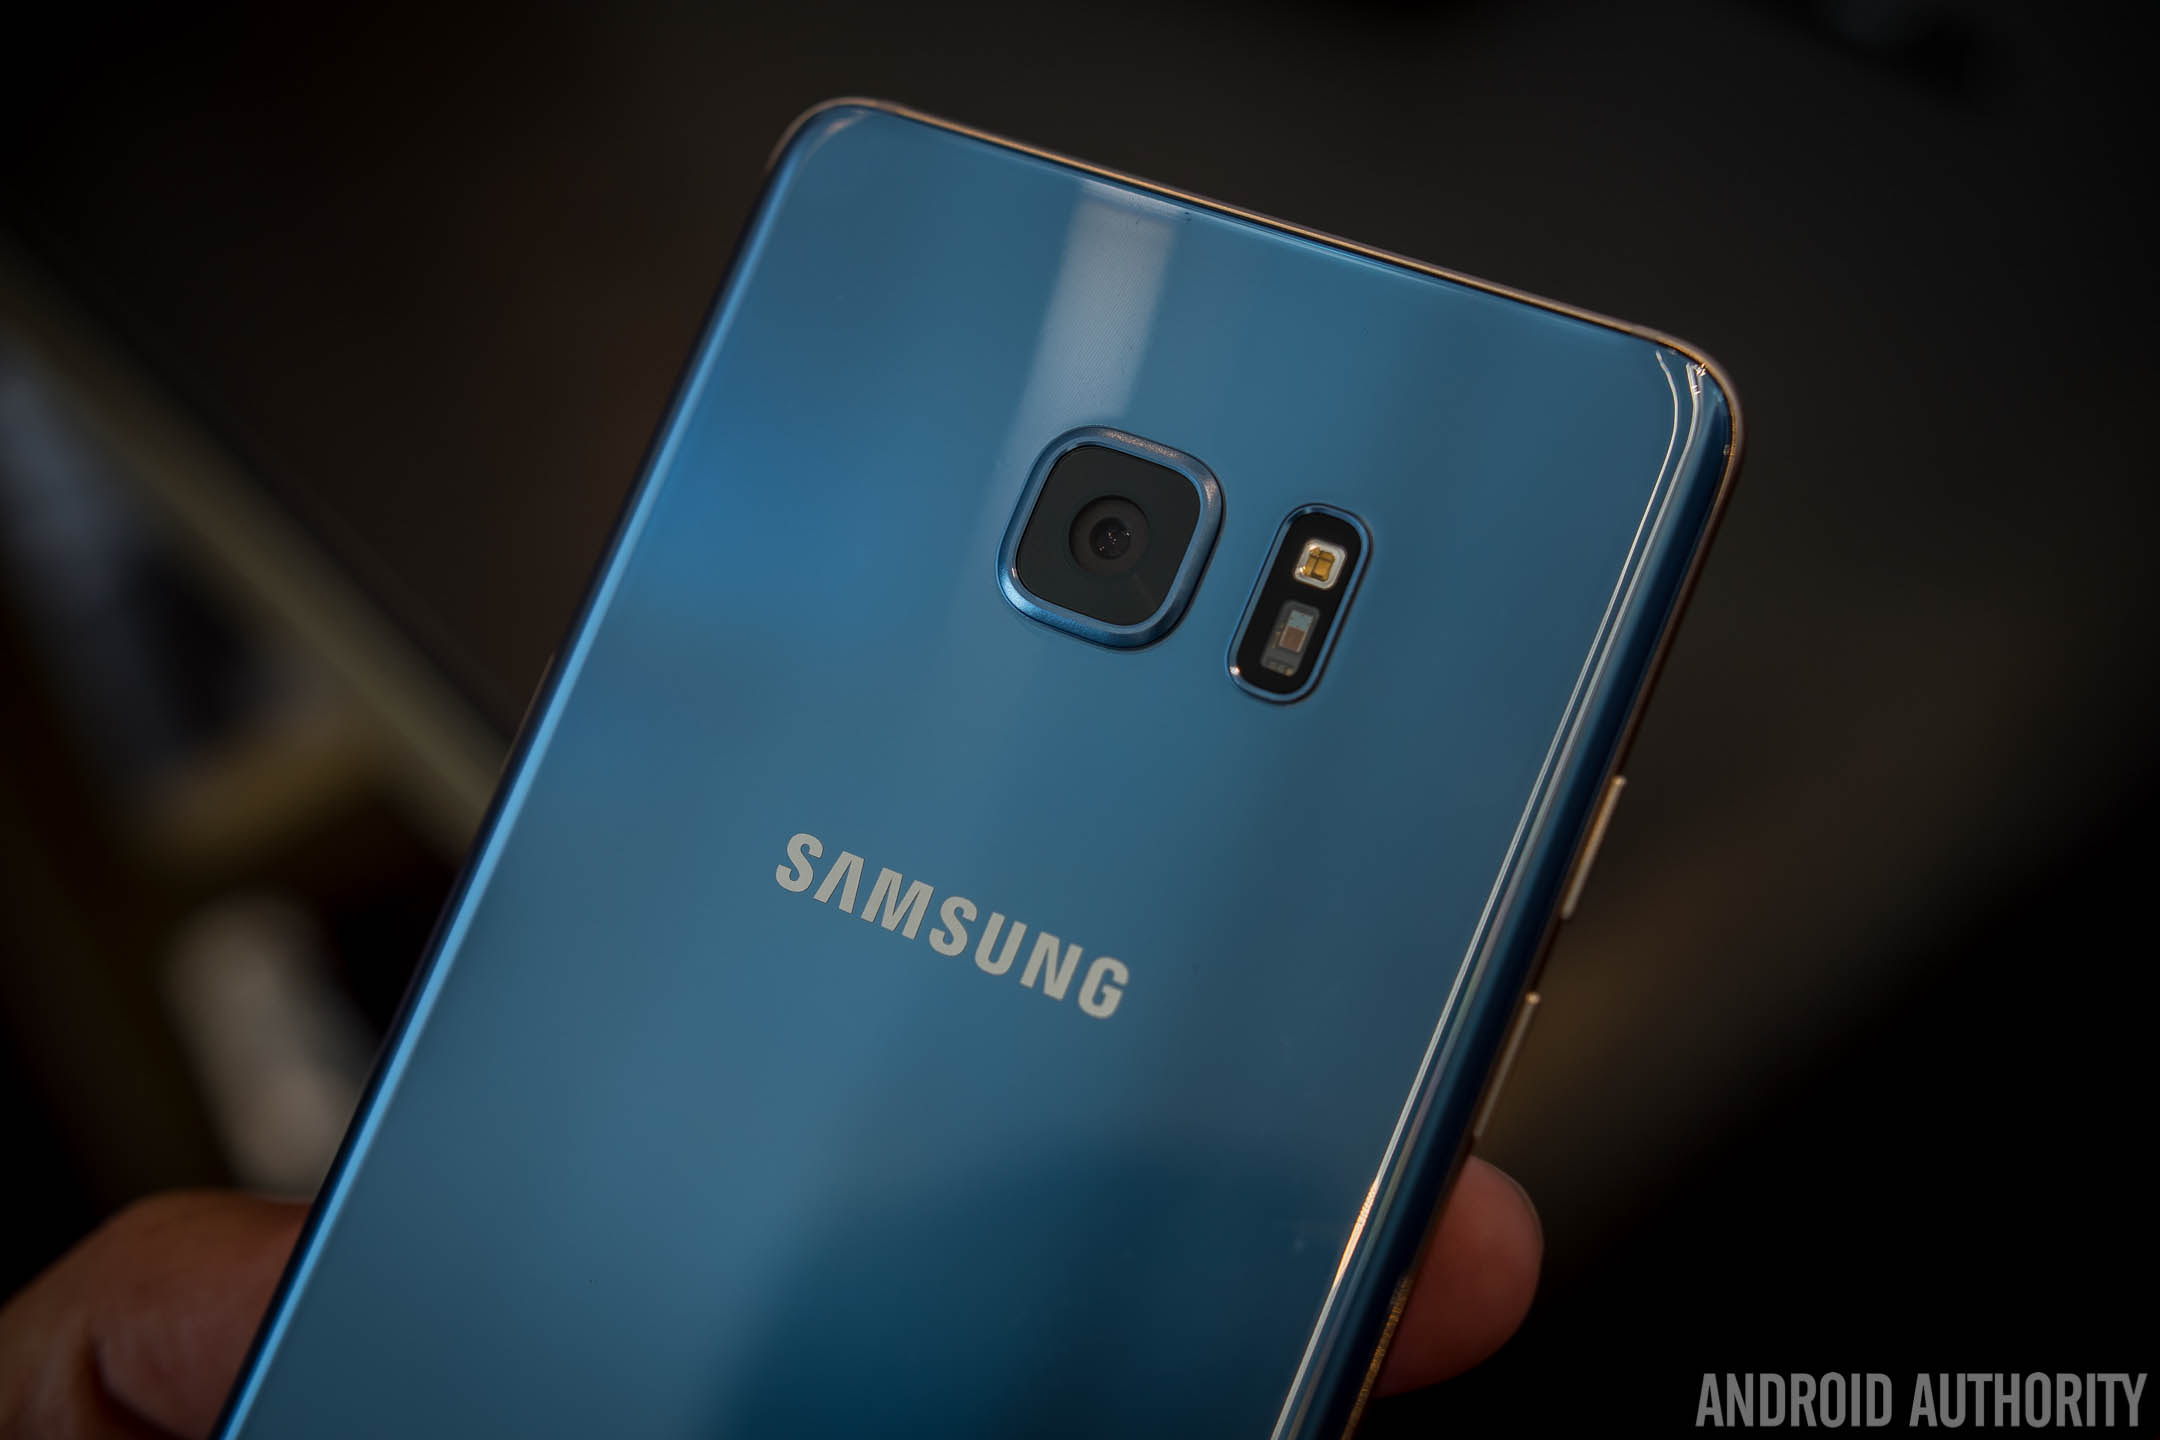 Samsung-Galaxy-Note-7-hands-on-first-batch-AA-(34-of-47)